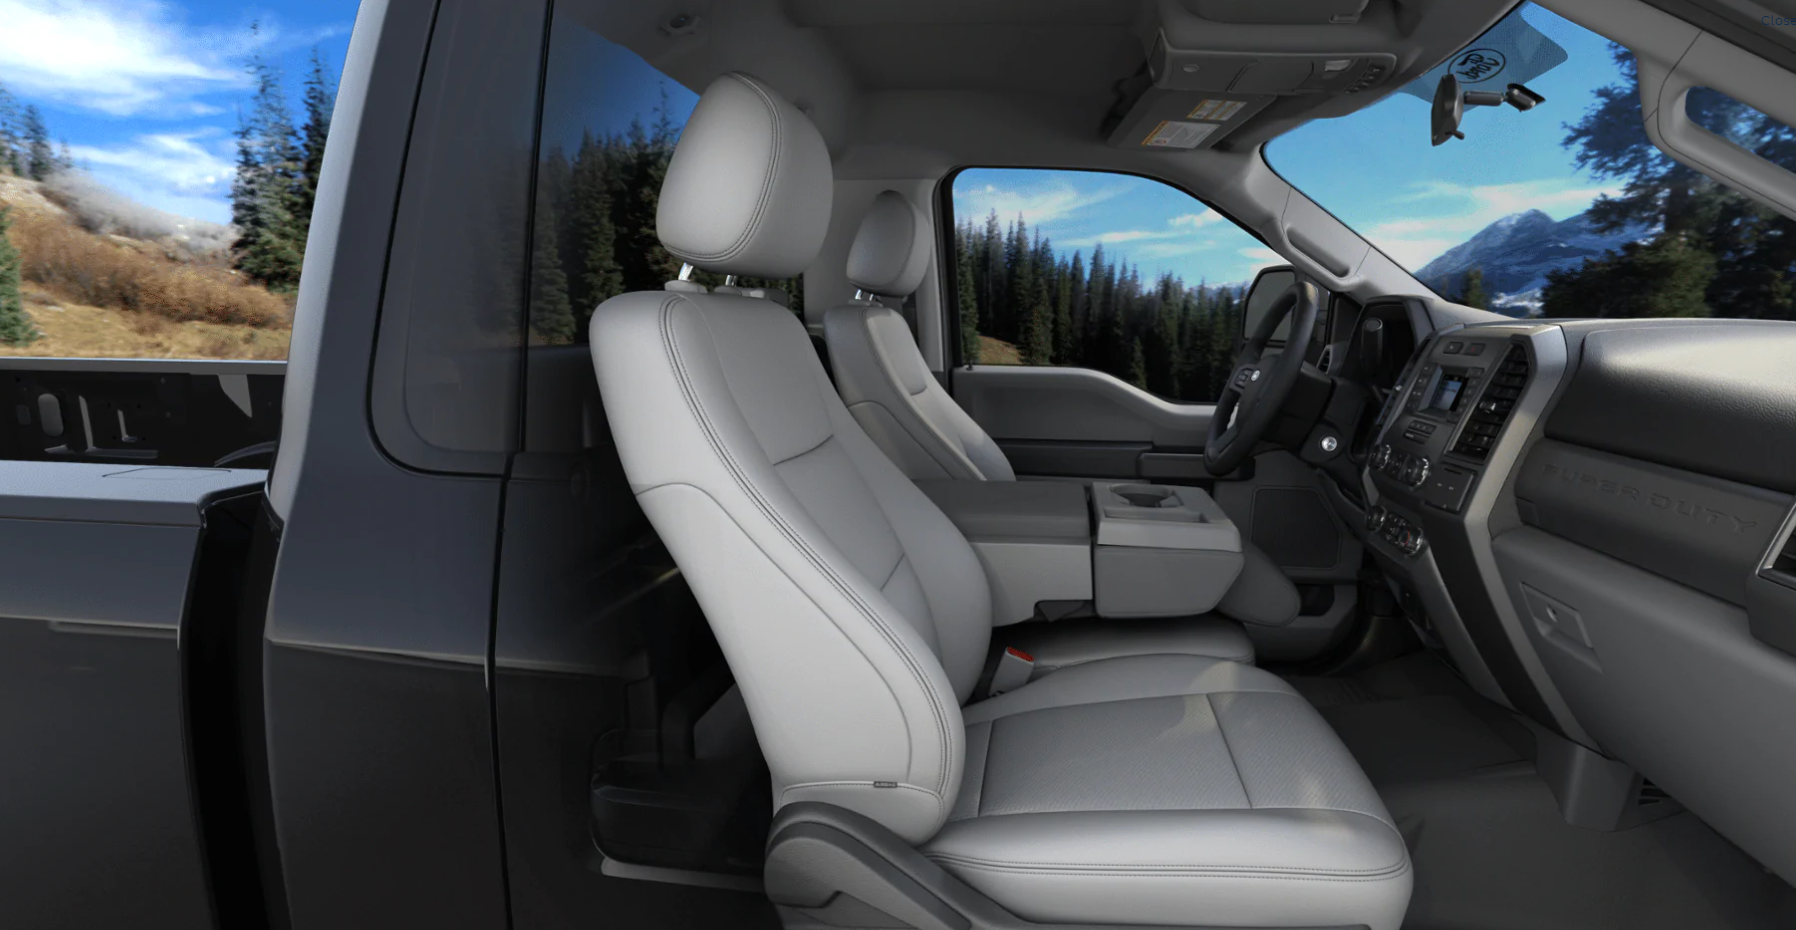 2020 Ford Super Duty F-250 Side View Interior Seating Picture.png